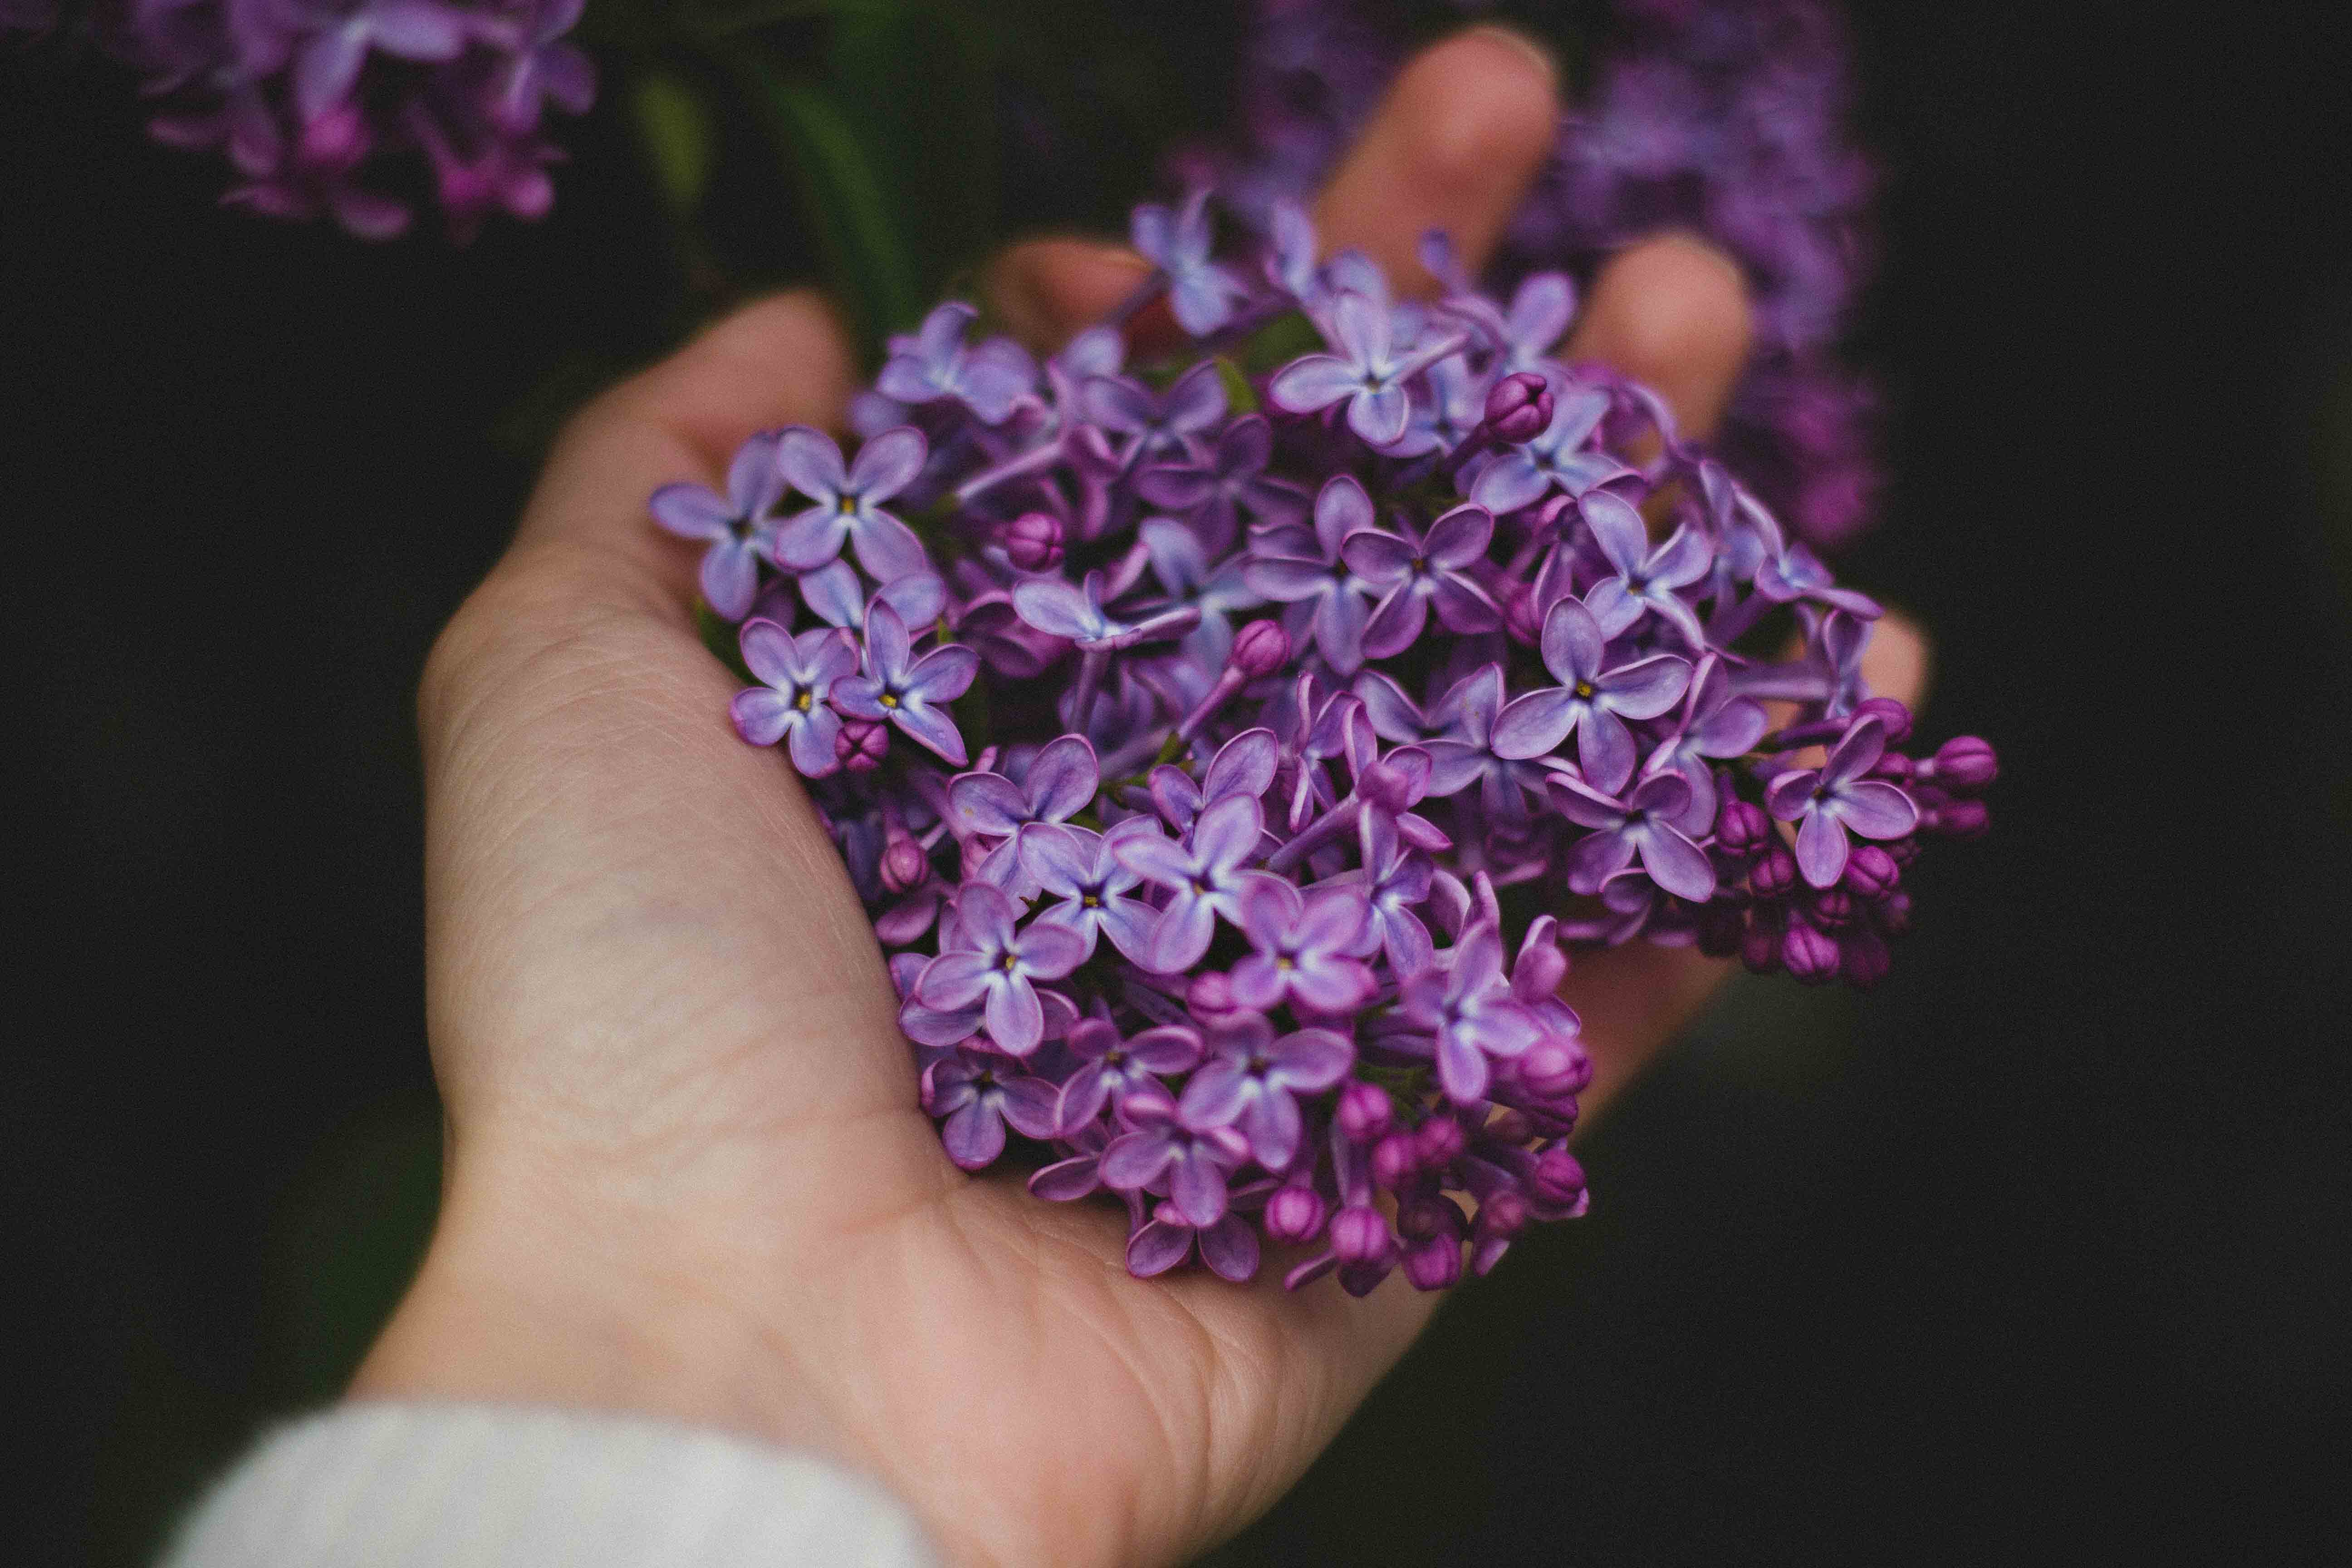 HAND HOLDING LILACS